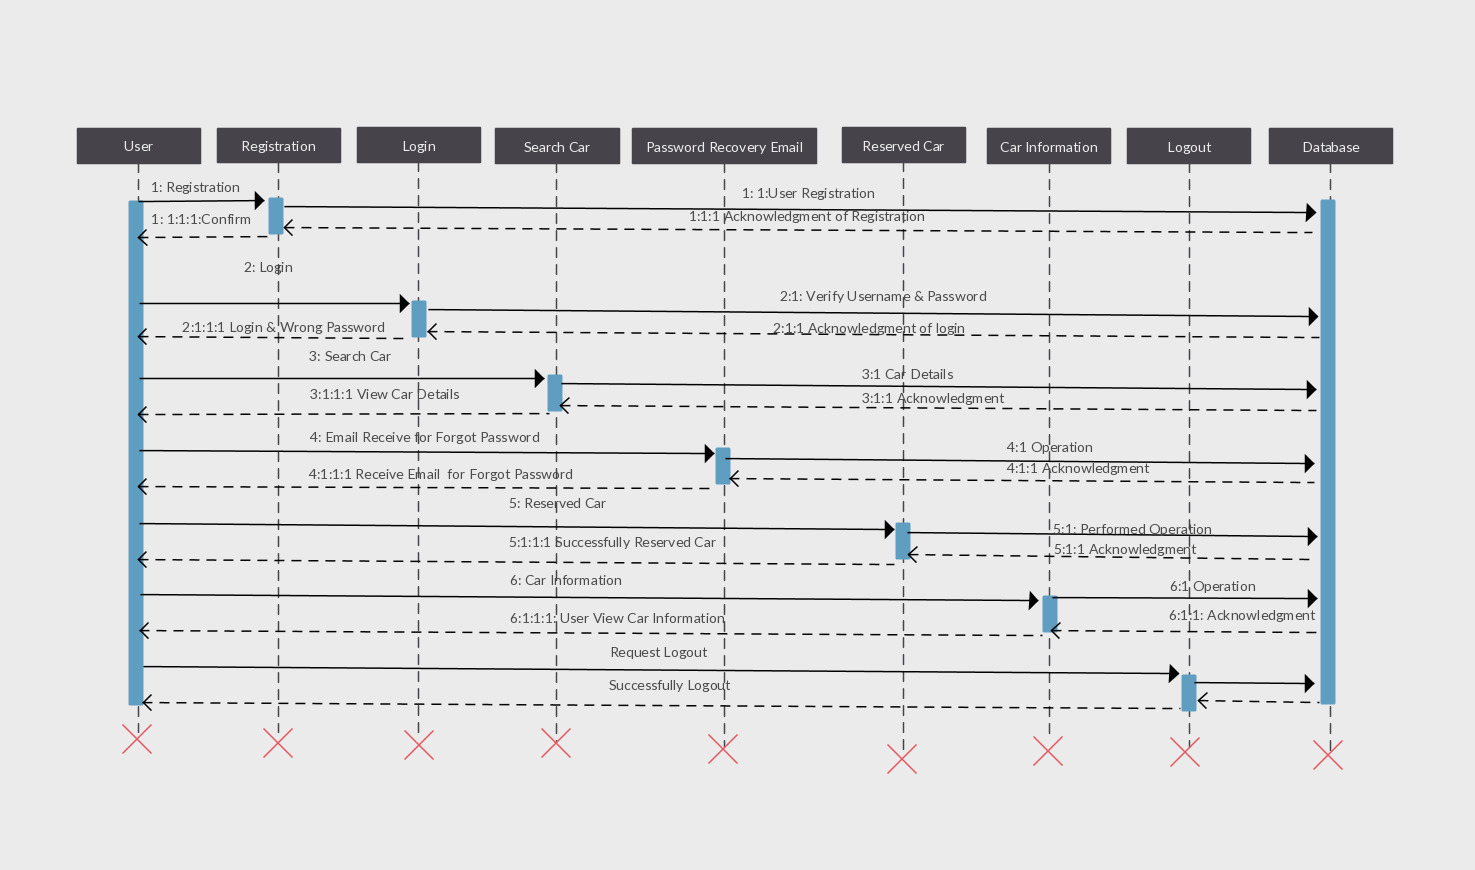 car rental system user sequence diagram template you can use this sequence diagram template to get started right away  [ 1475 x 870 Pixel ]